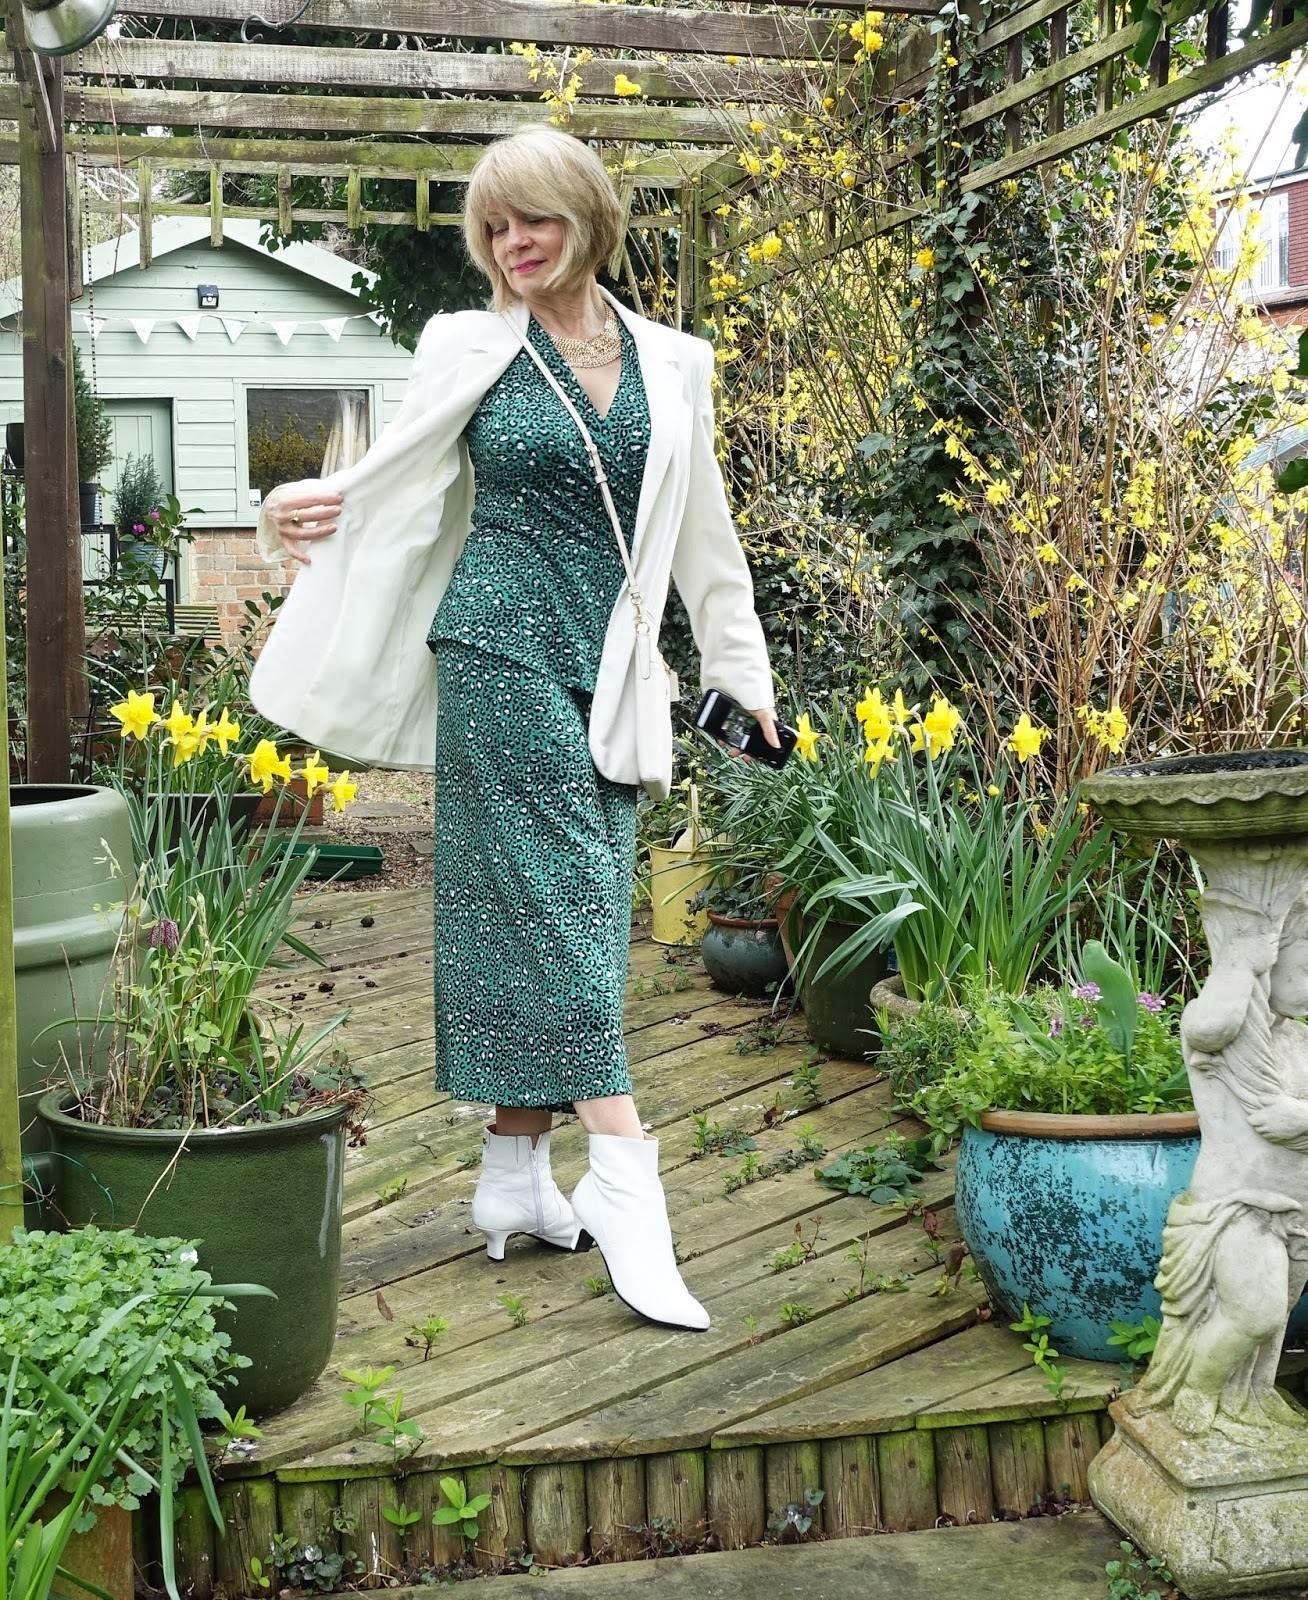 Matching co-ordinates - tops with bottoms - are still very fashionable. Over 50s blogger Gail Hanlon shows a green leopard top with tie waist and matching culottes by Kettlewell.